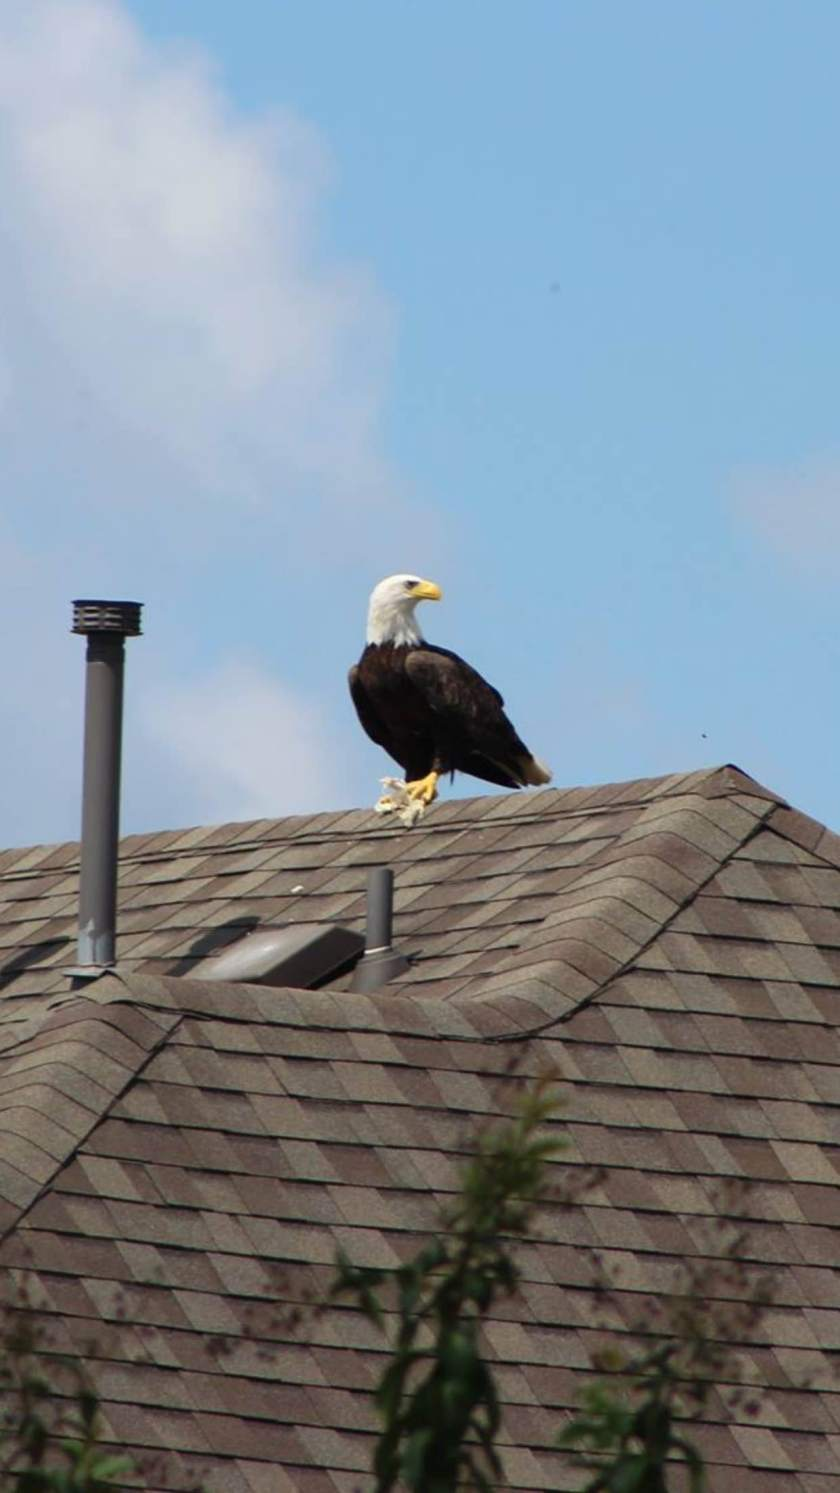 Bald eagle in Texas